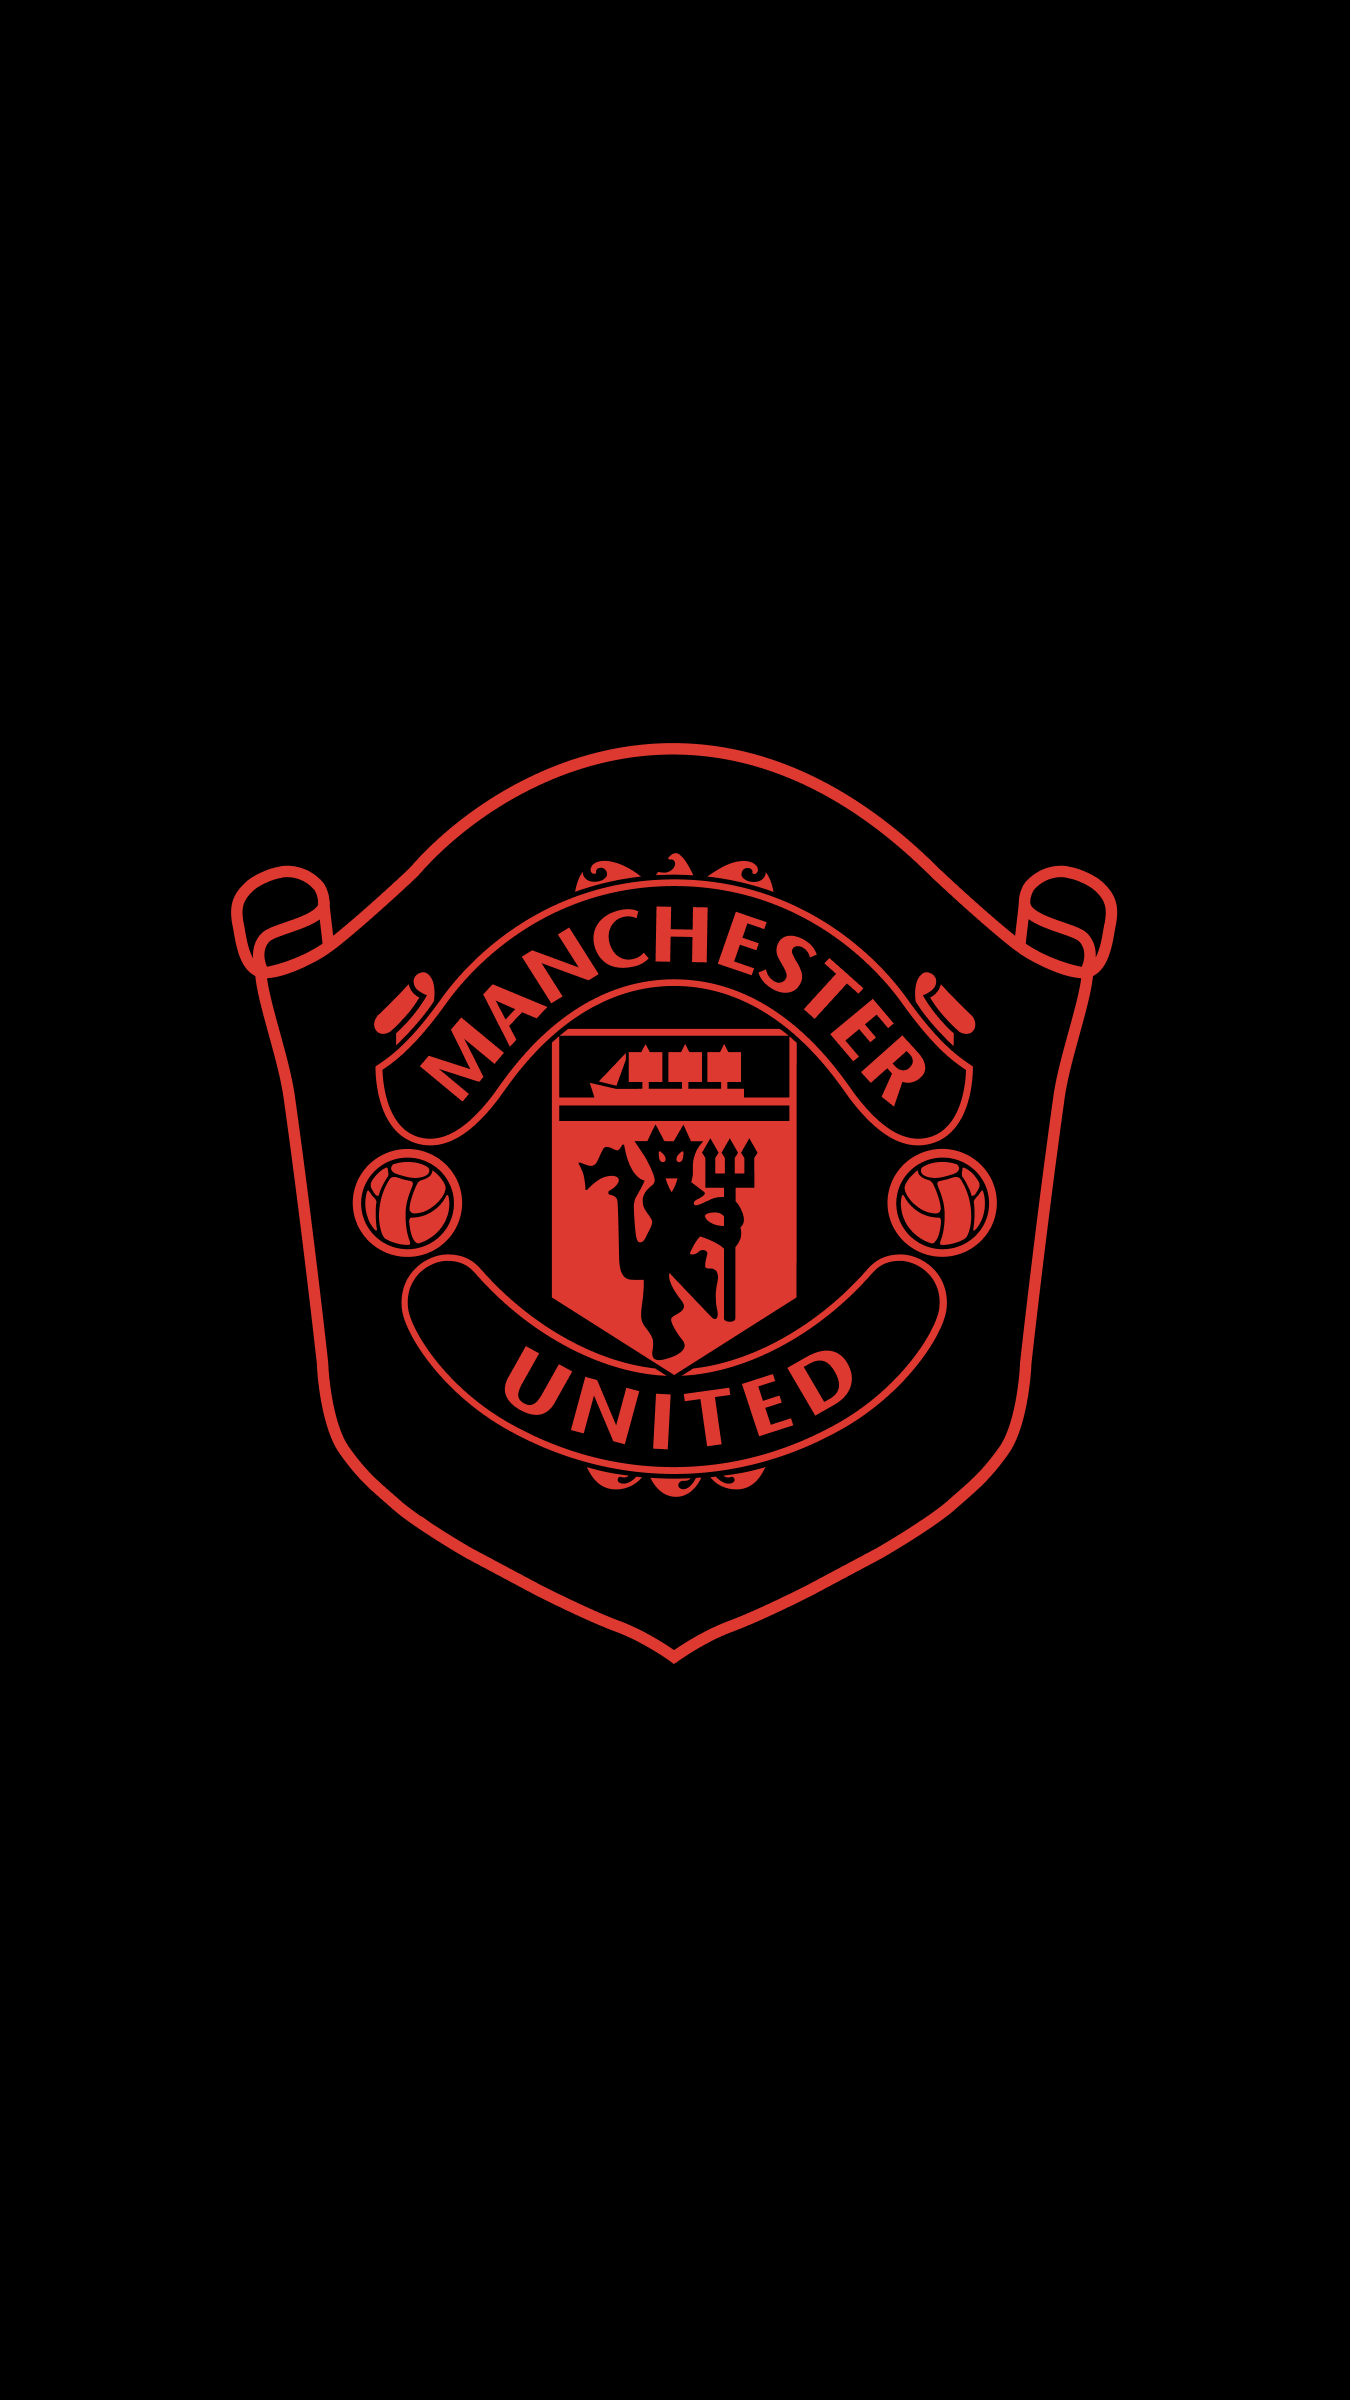 Red Devils Man United Wallpaper Posted By Ryan Tremblay